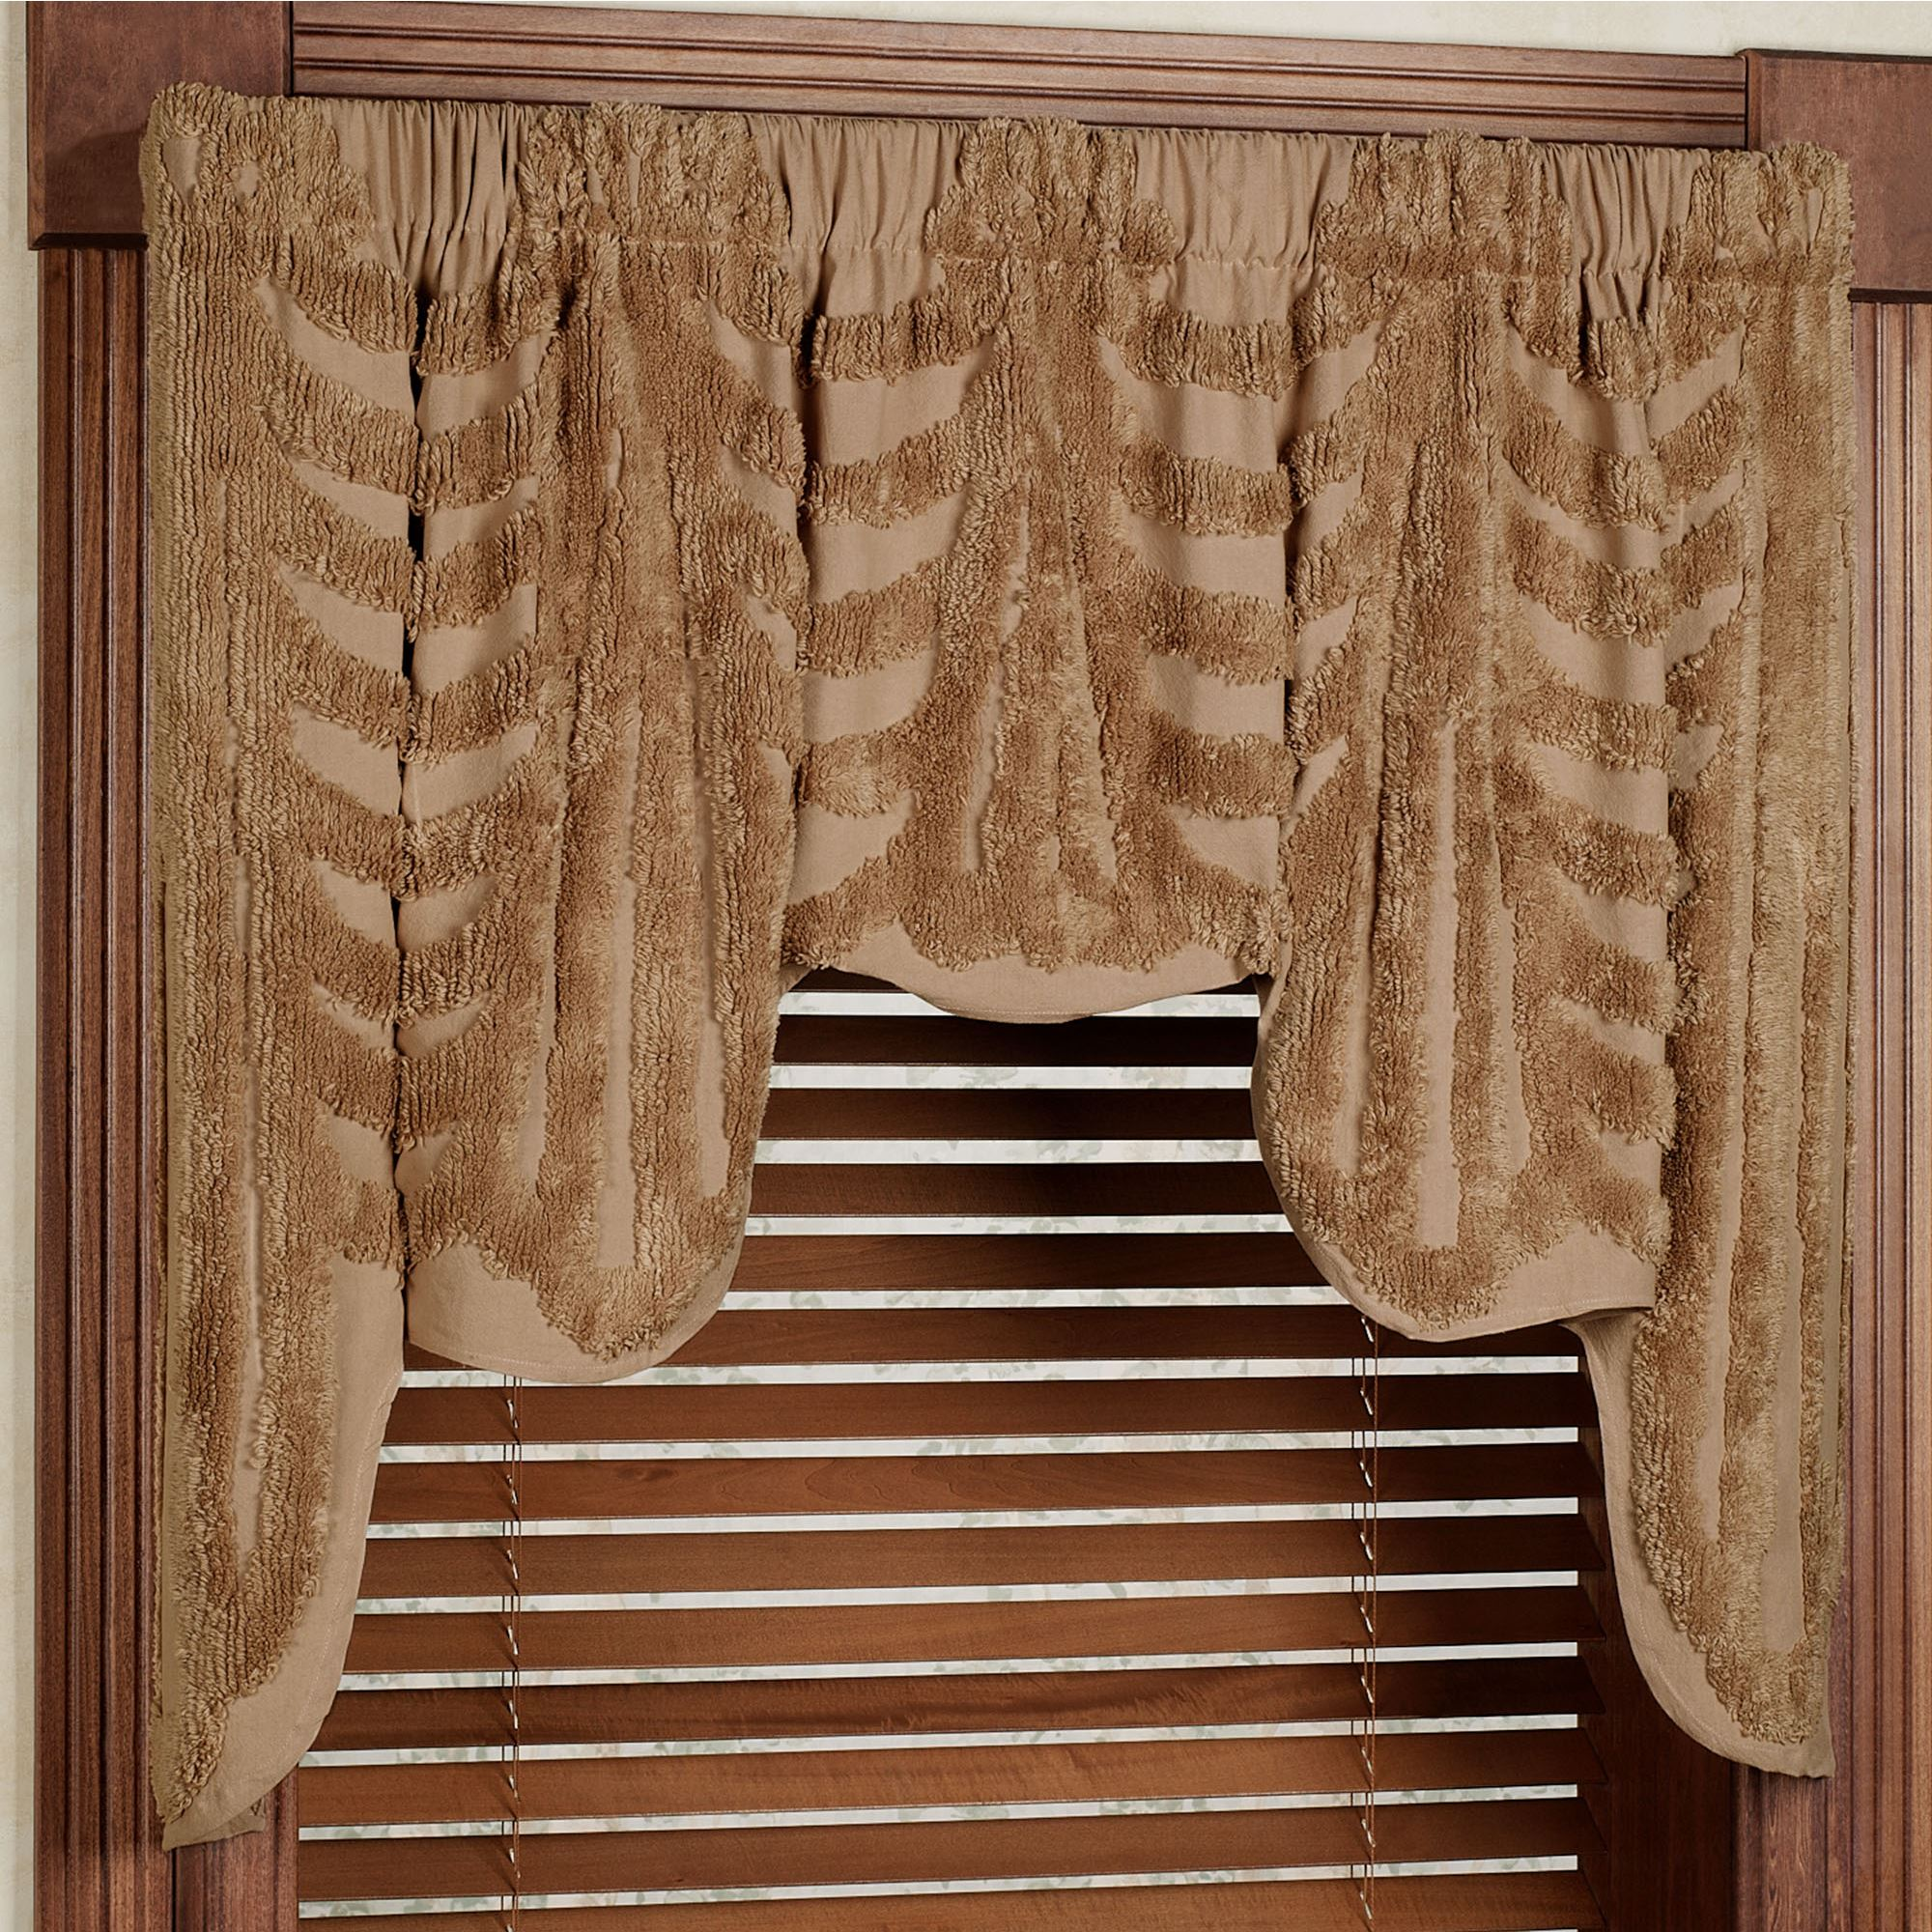 creamy blackout fabric curtain valance itm curtains pelmet ivory drapes sheer net blockout beige with swag